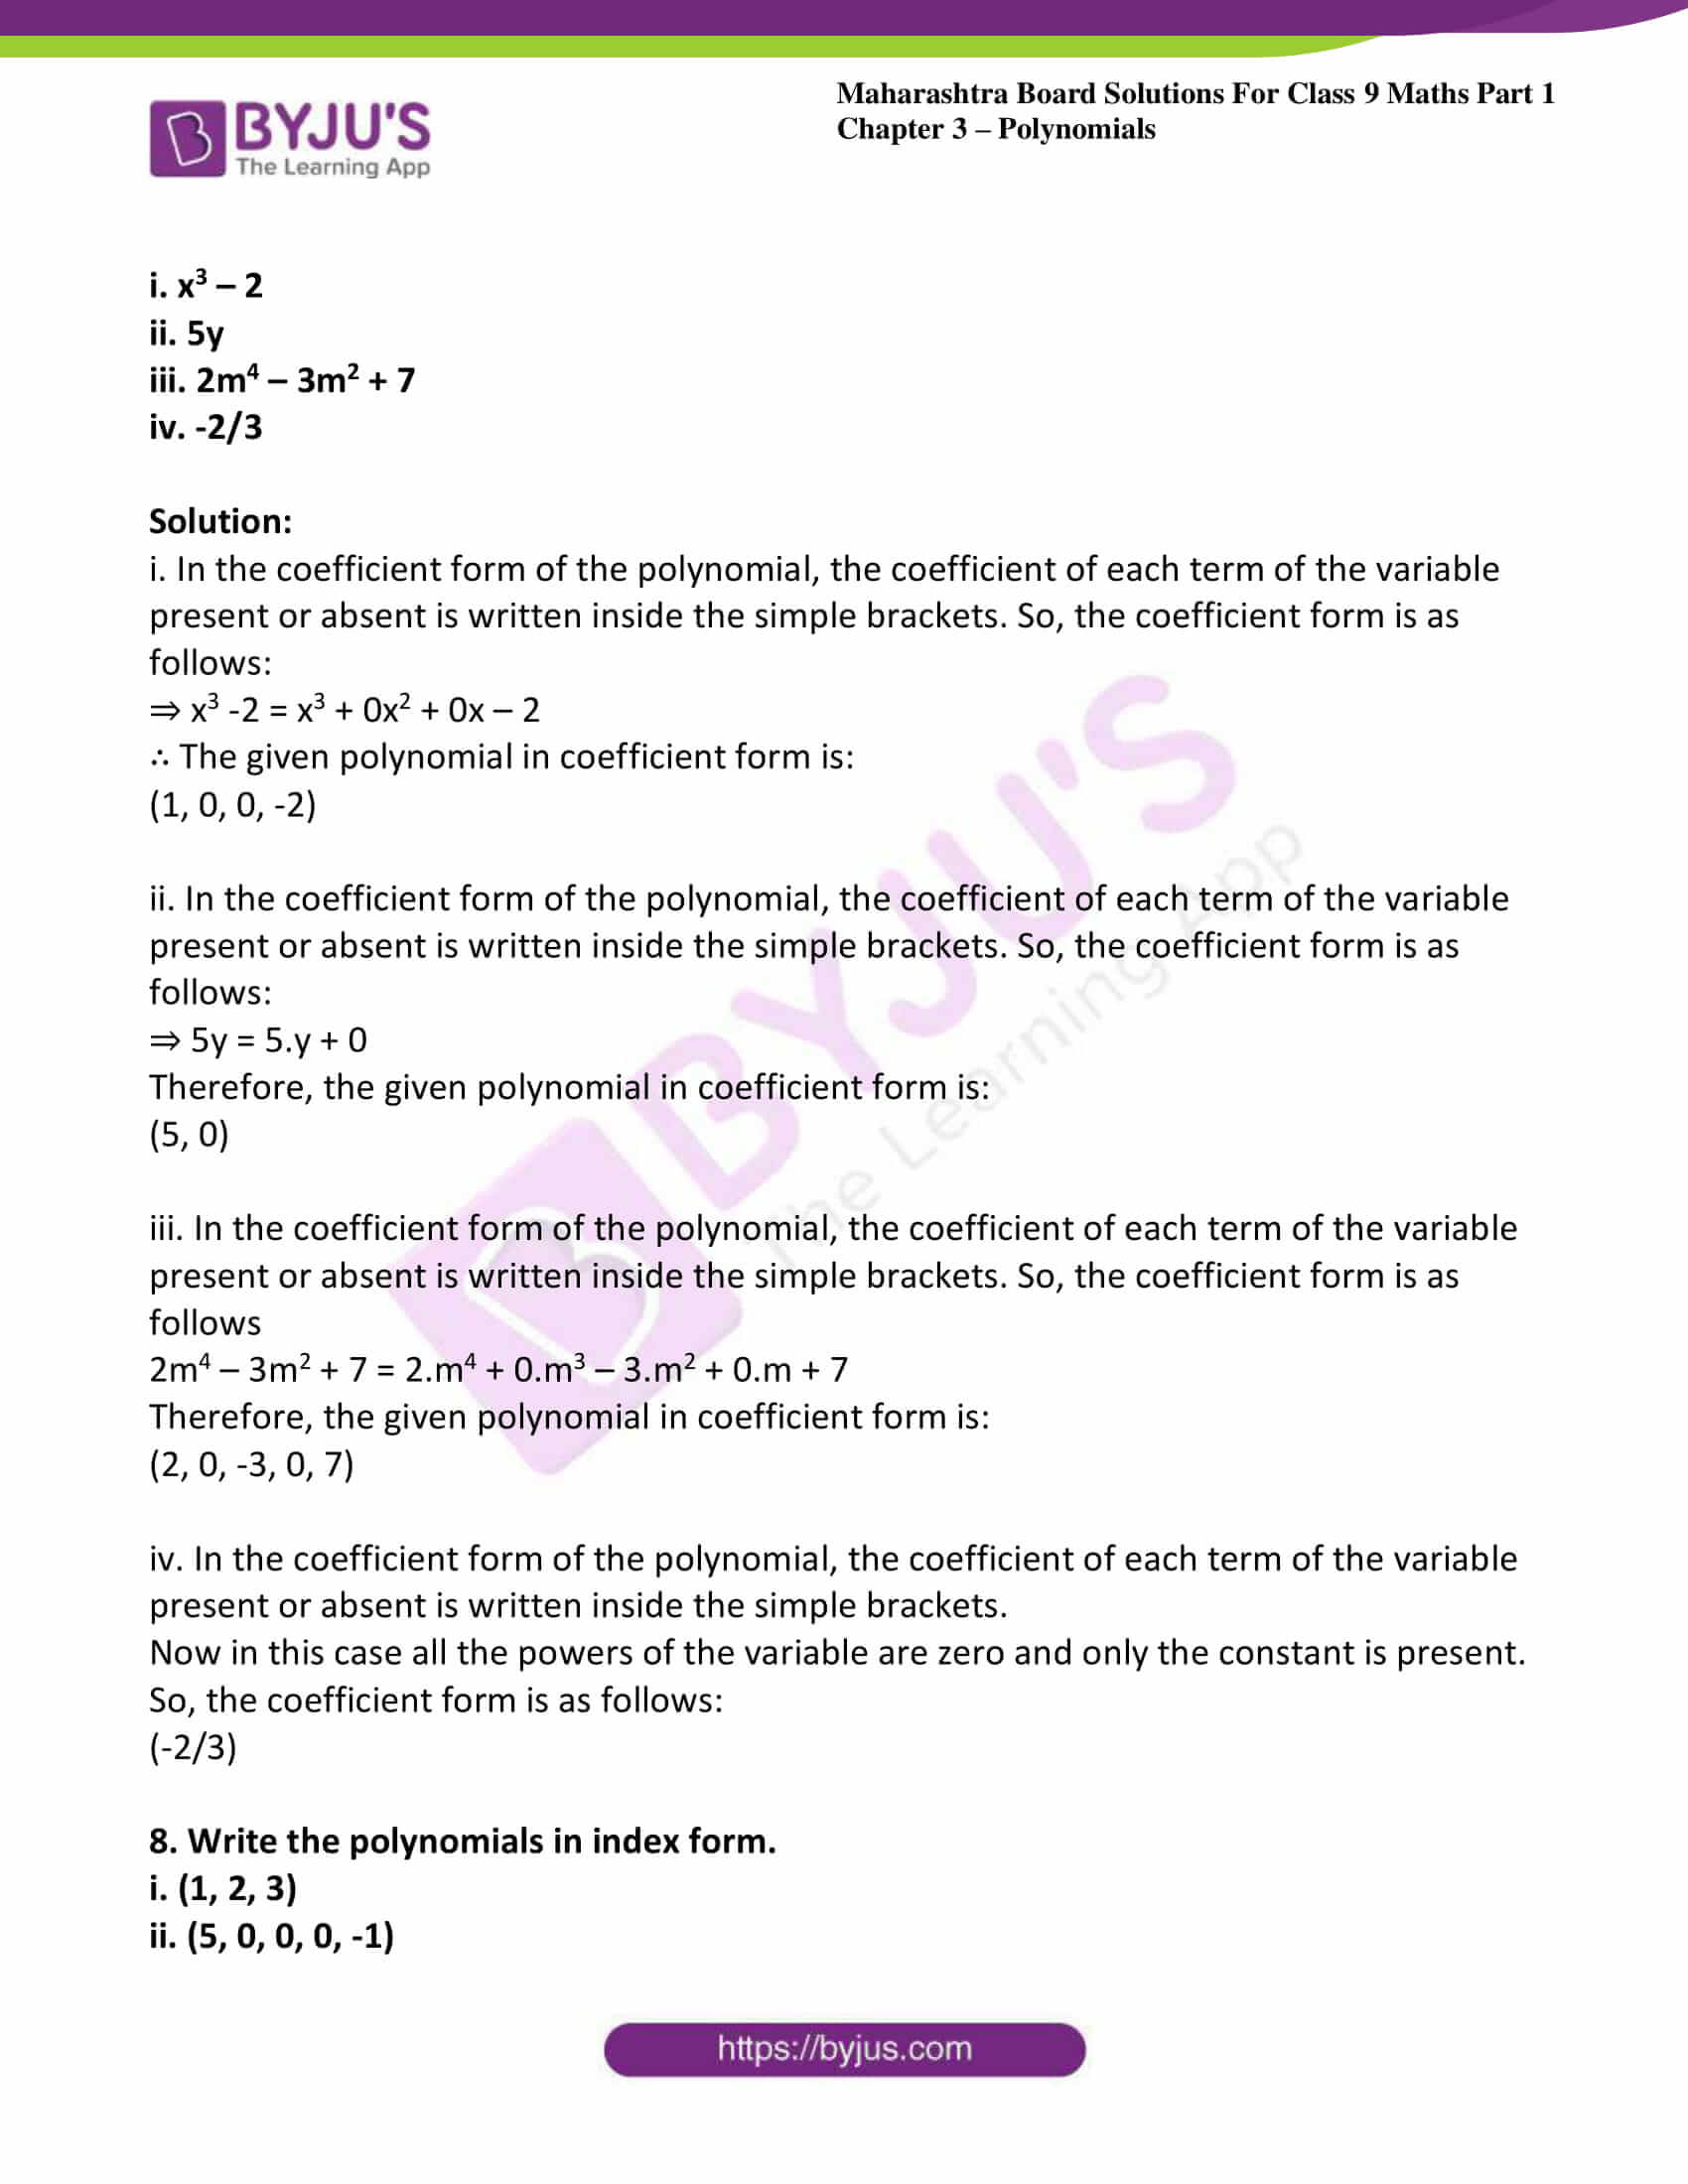 msbshse sol class 9 maths part 1 chapter 3 polynomials 05